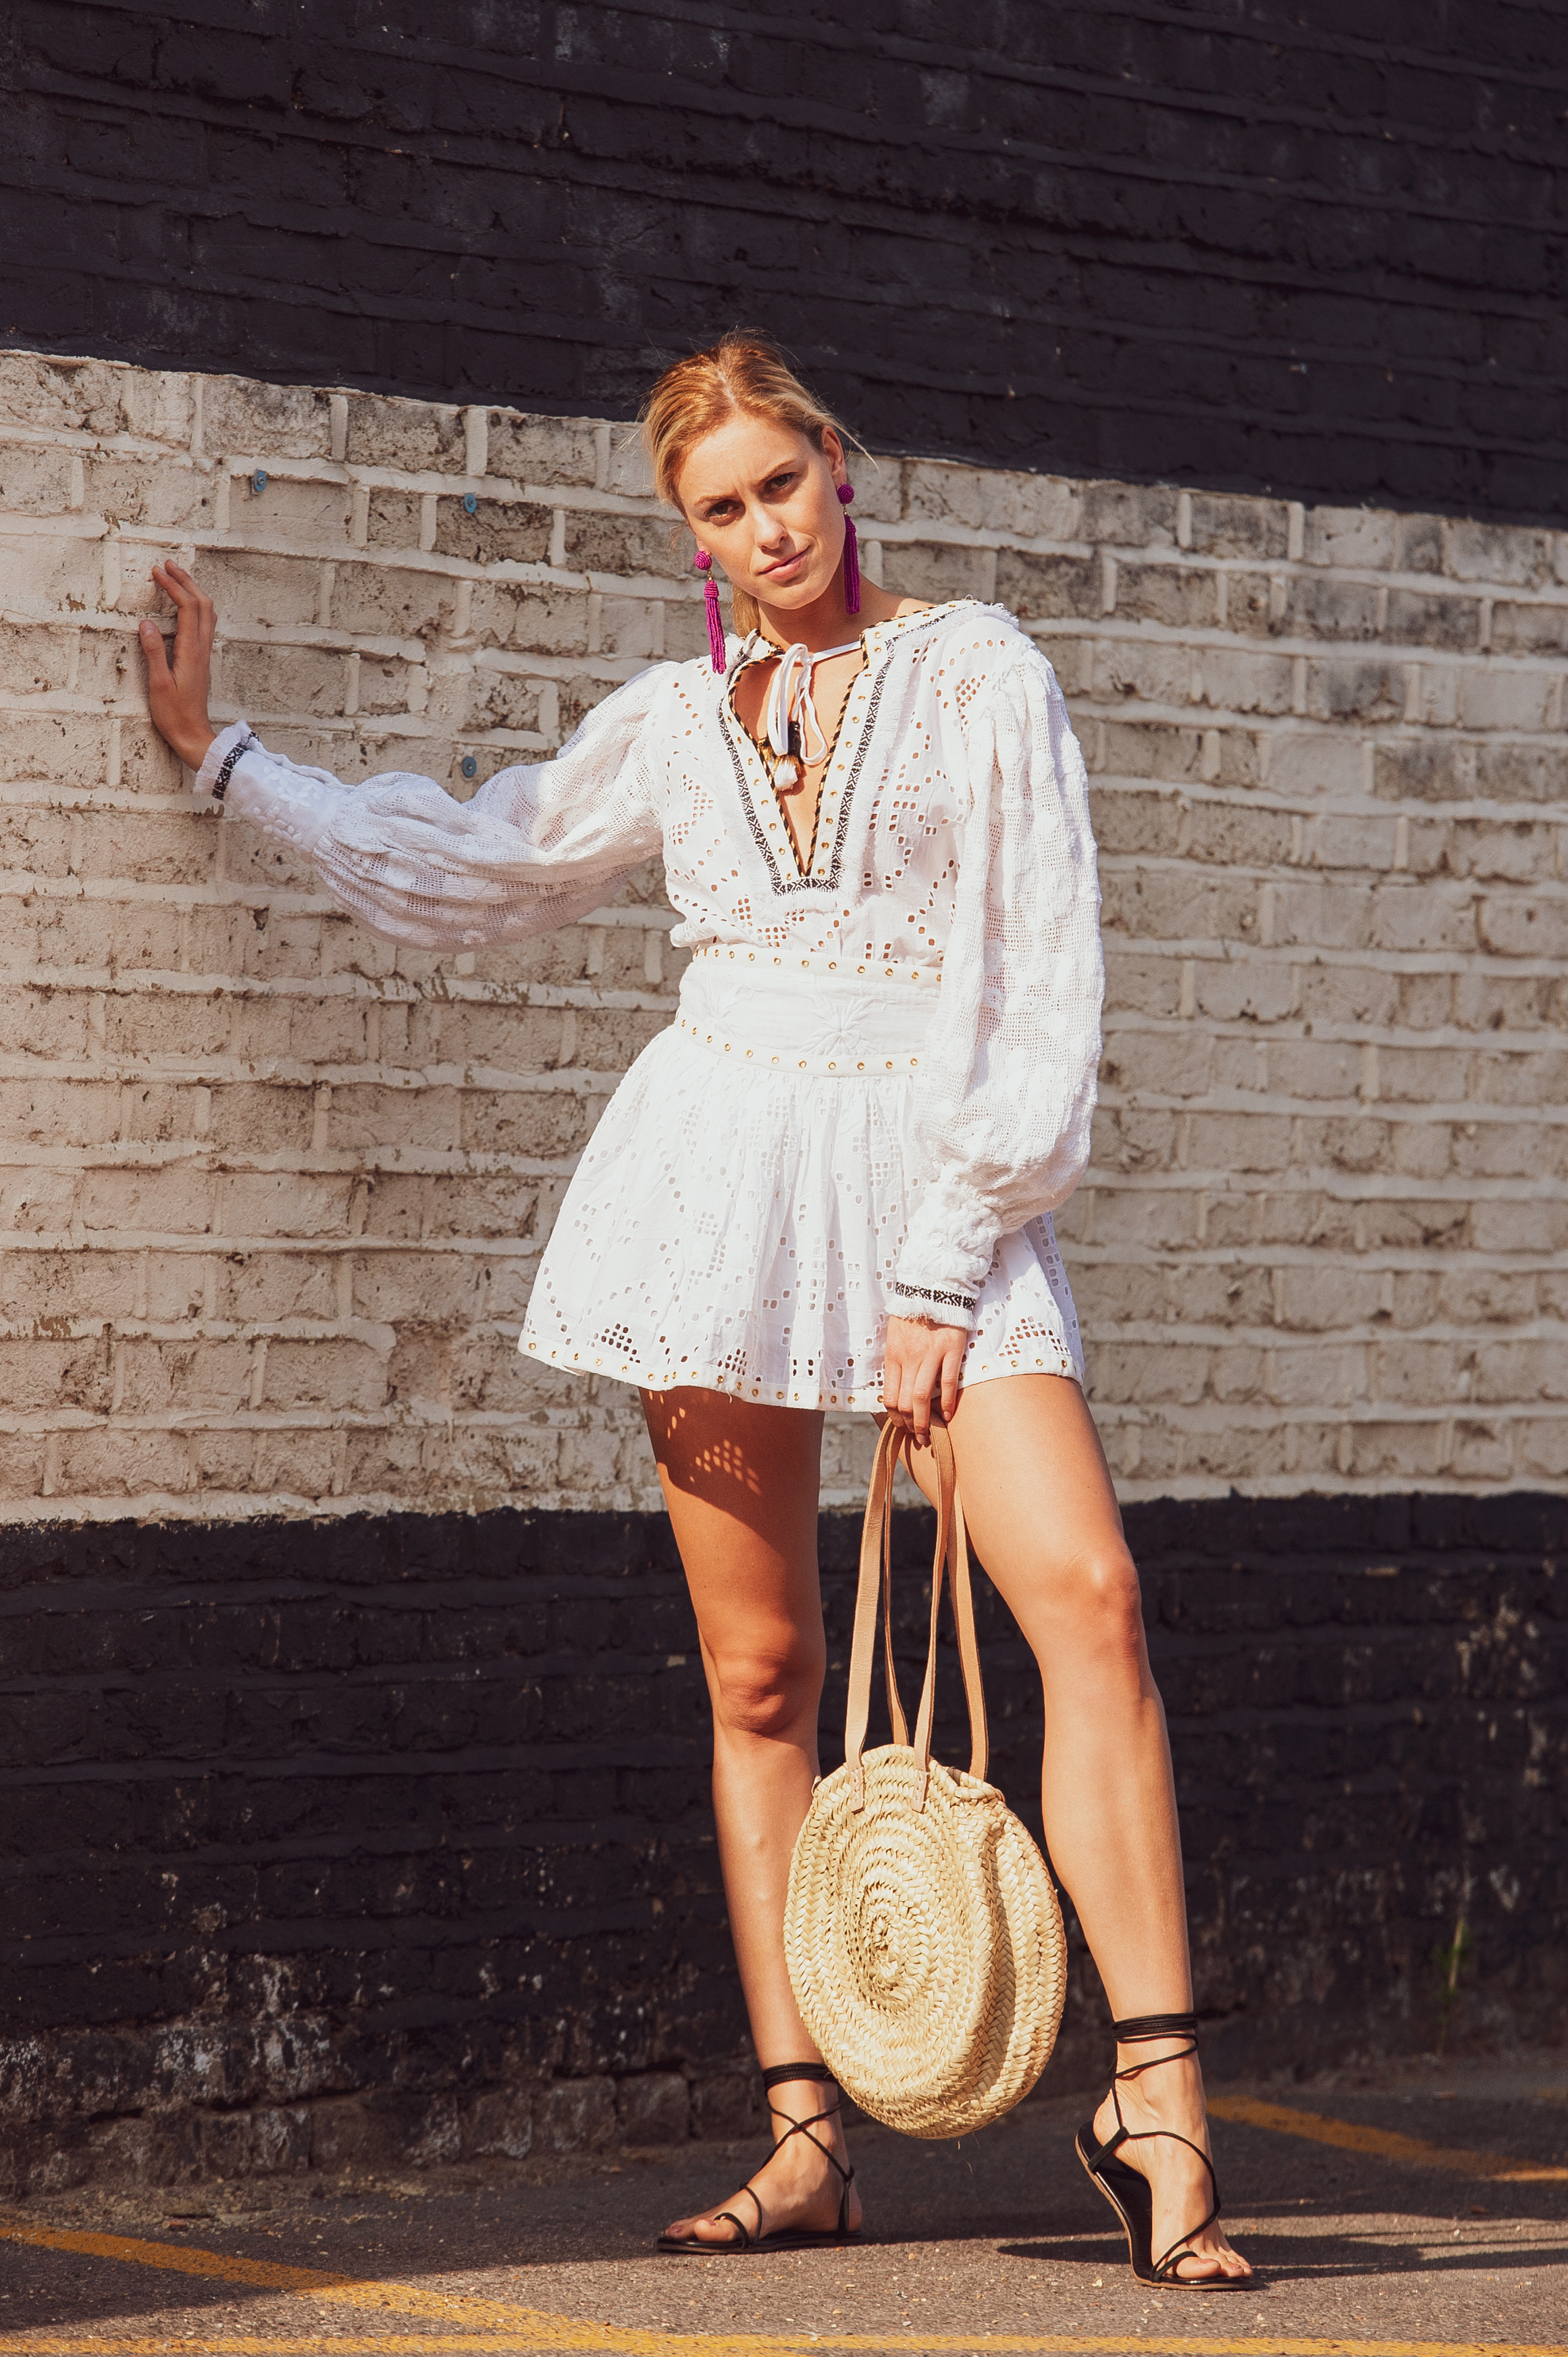 SS19-15a LE CAPELAN CUTWORK LACE BALLOON SLEEVE BLOUSE (Filet Lace Sleeves) worn with  SS19-17 LE PORTISSOL CUTWORK LACE MINI SKIRT